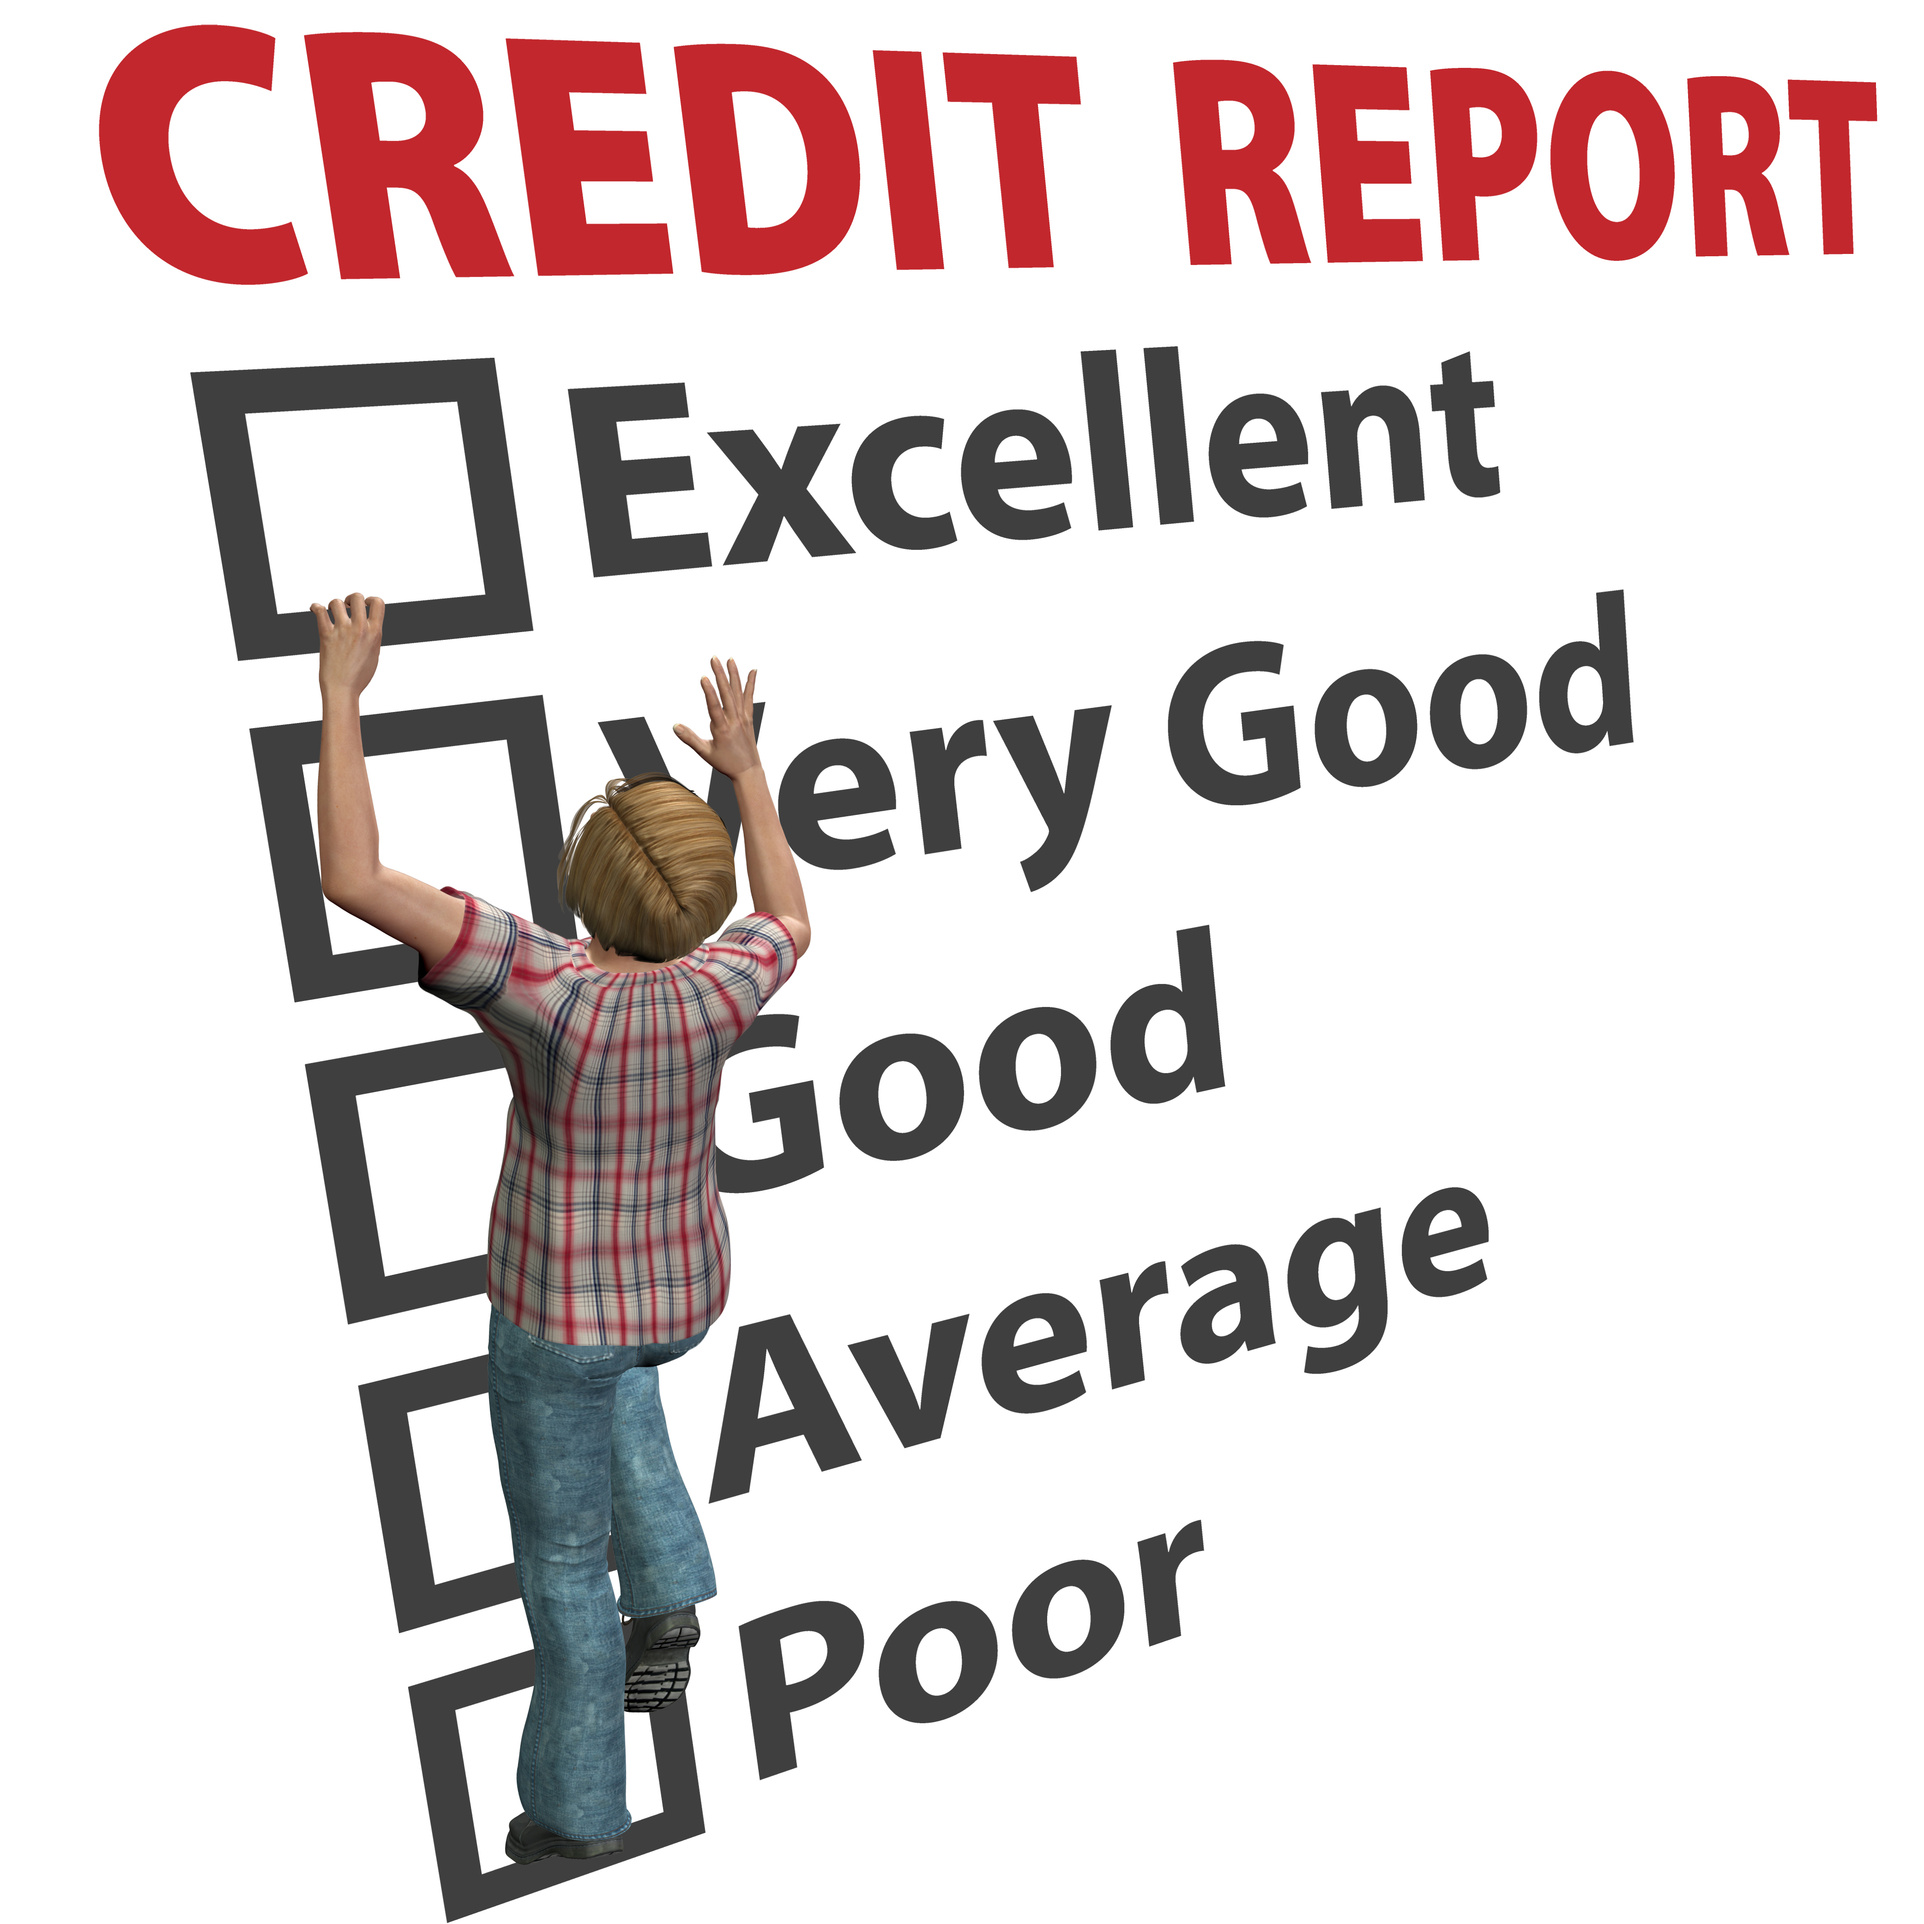 https://fairfinanceblogsat.files.wordpress.com/2015/05/top-places-to-get-a-free-credit-score-or-report.jpg